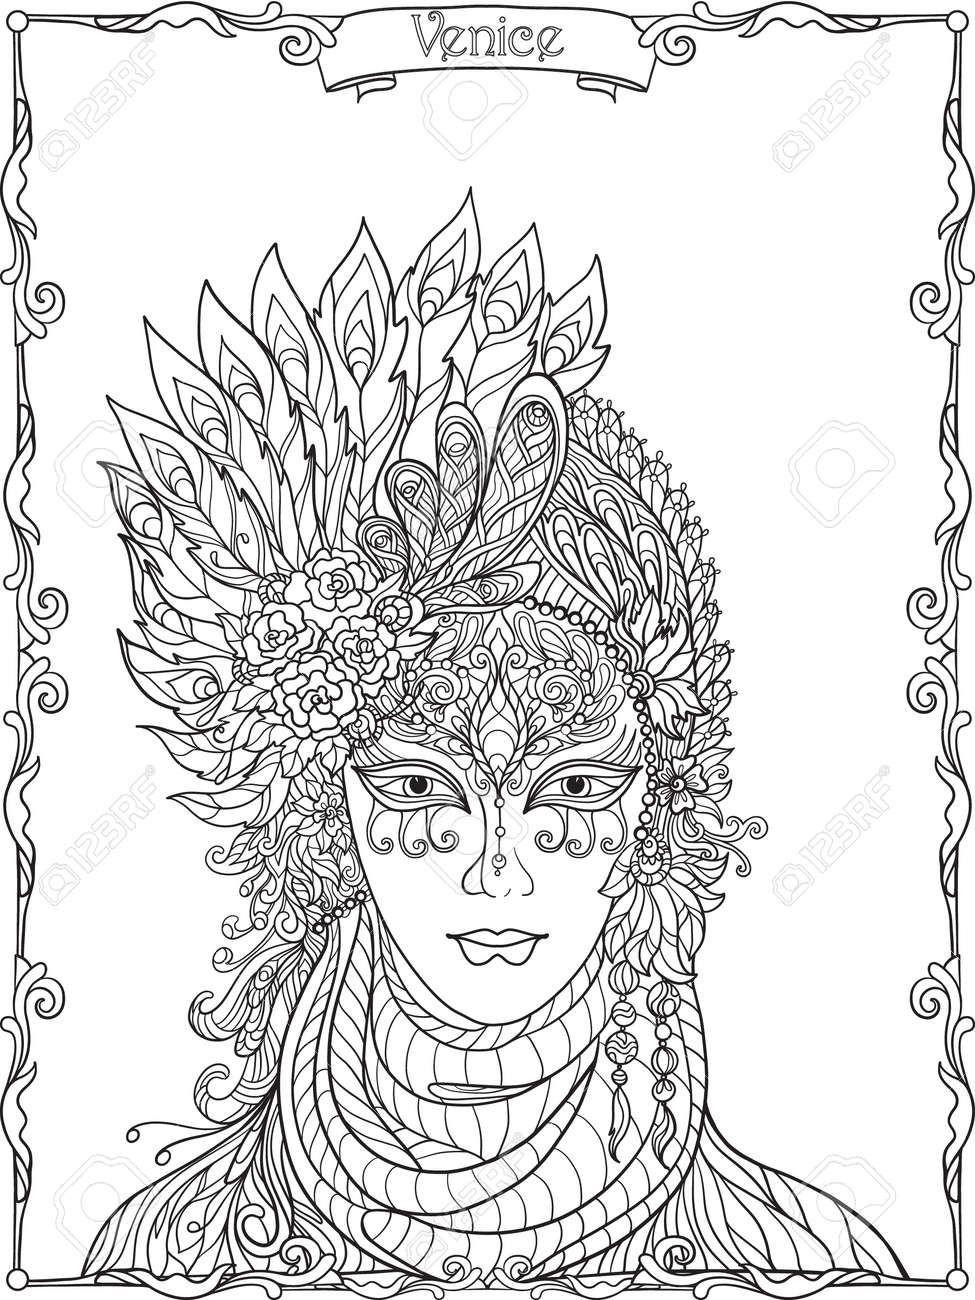 Venetian Mask, Carnival Costume Outline Hand Draw. Coloring ...